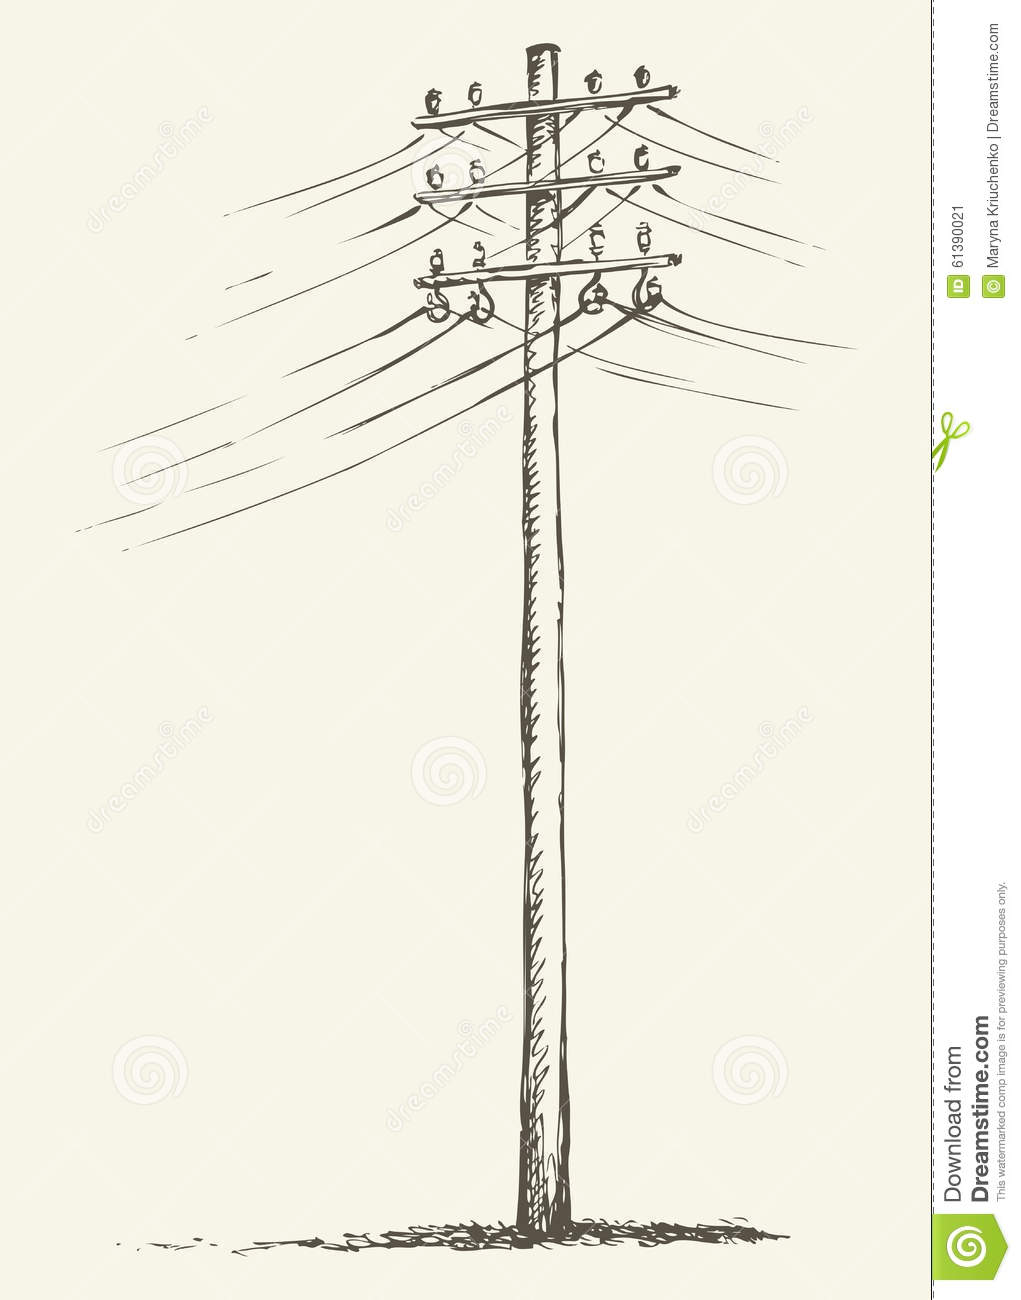 Old Phone Wiring Diagram Guide And Troubleshooting Of 4 Wire Jack Wooden Power Pole Stock Vector Image 61390021